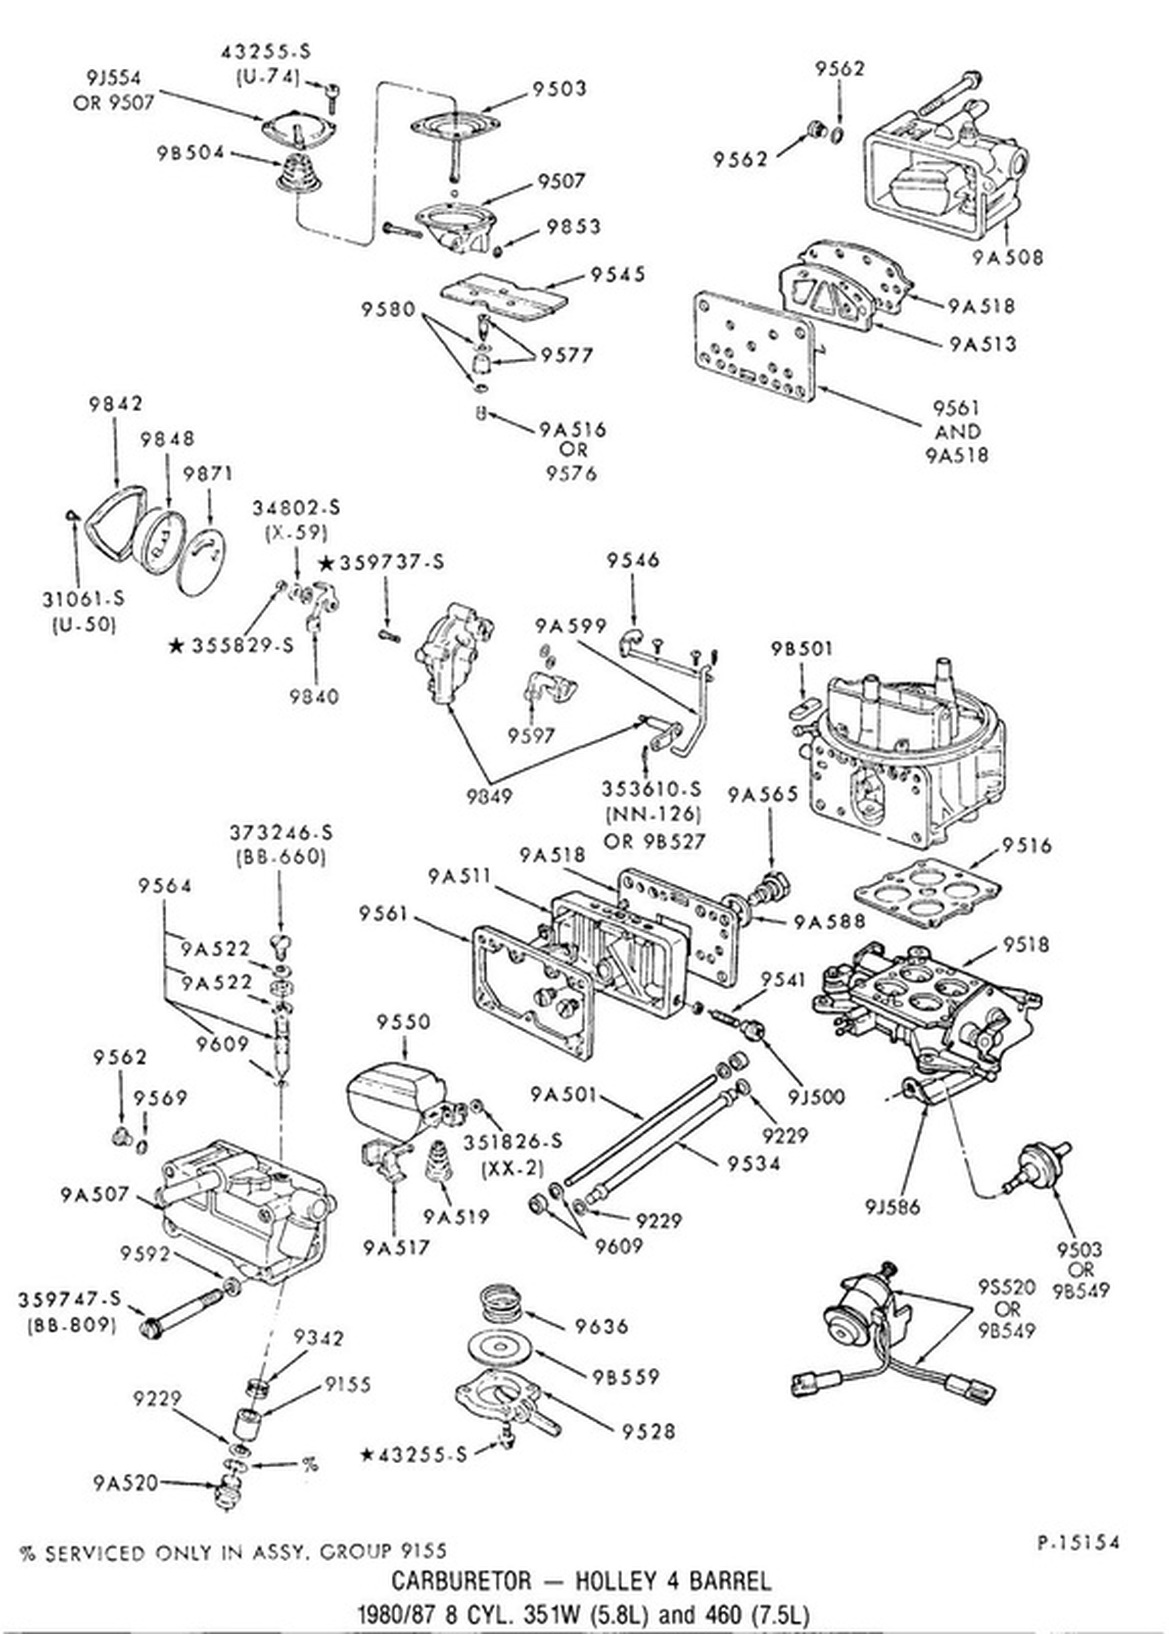 Electric Choke Wiring Diagram Webber